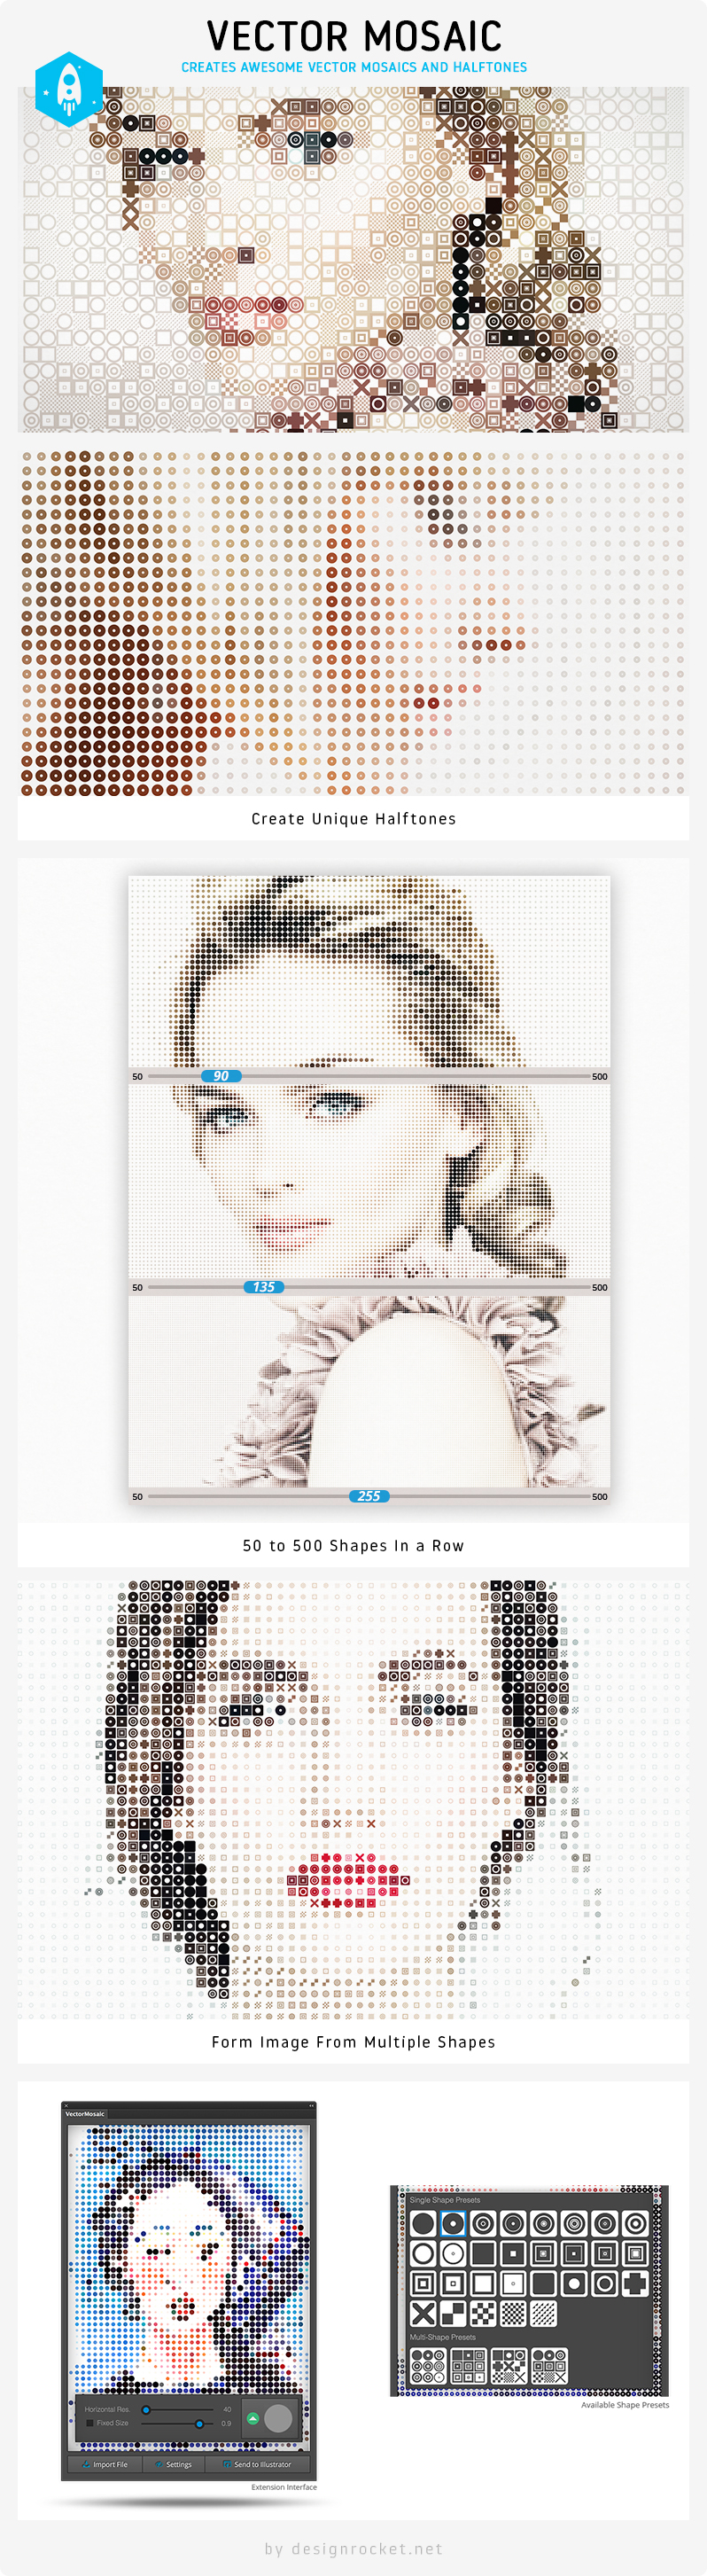 Photo Effects Pack - Vector Mosaic